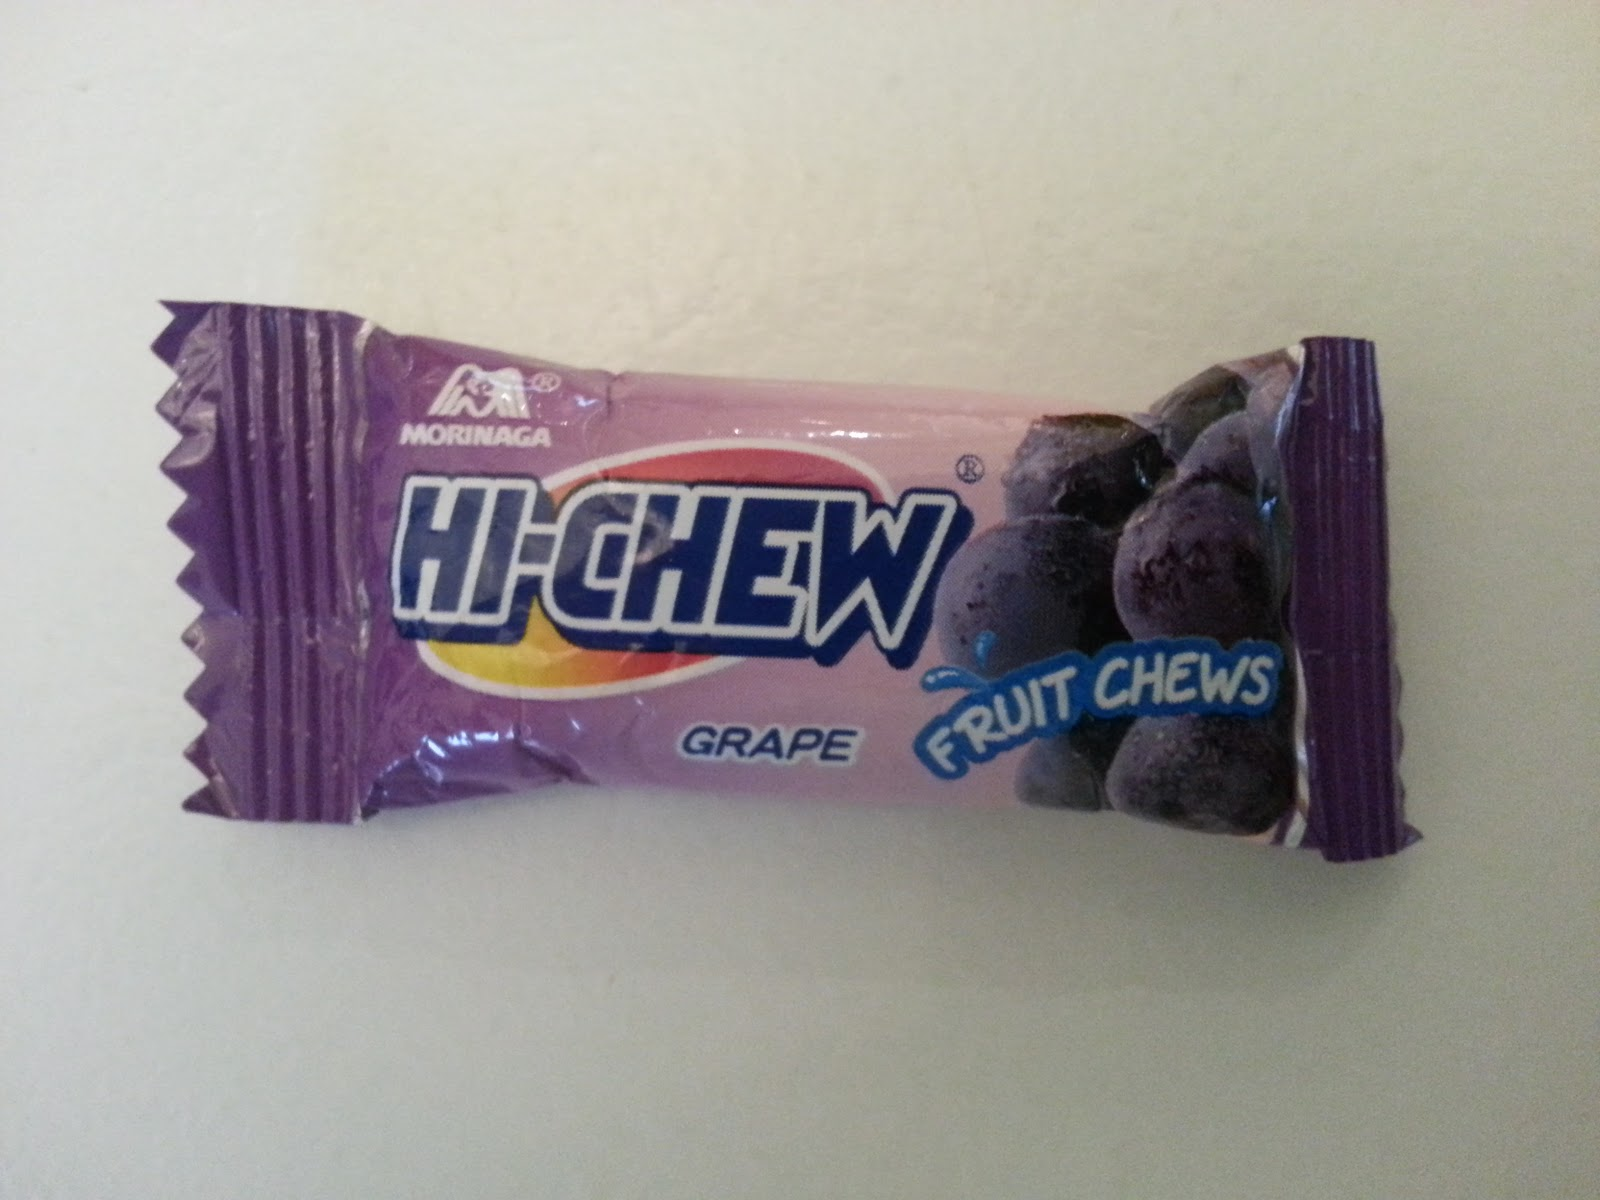 Walking The Candy Aisle: Hi-Chew review